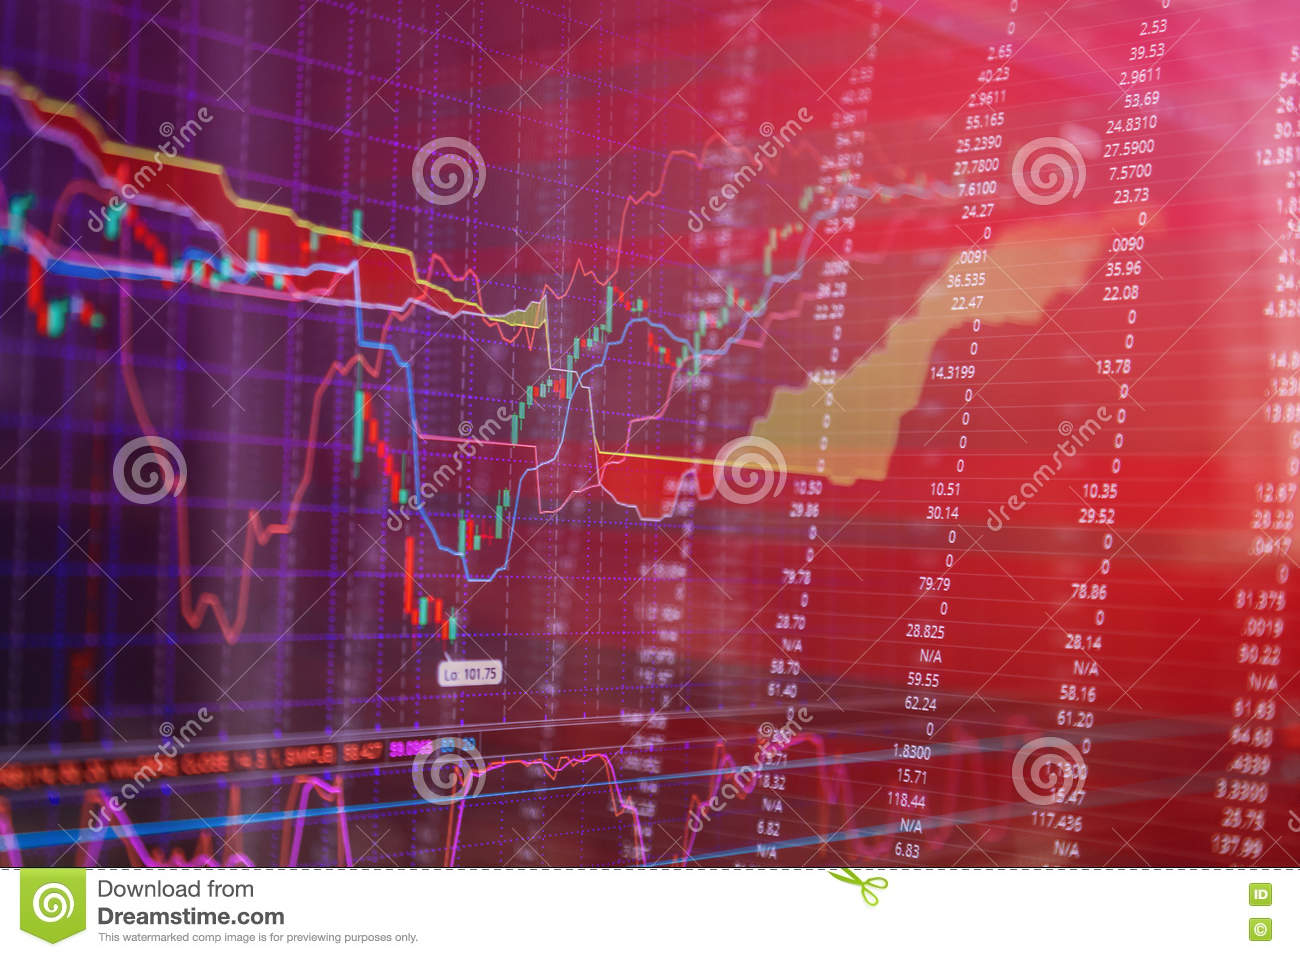 stock market prices candle stick stock market tracking graph stock